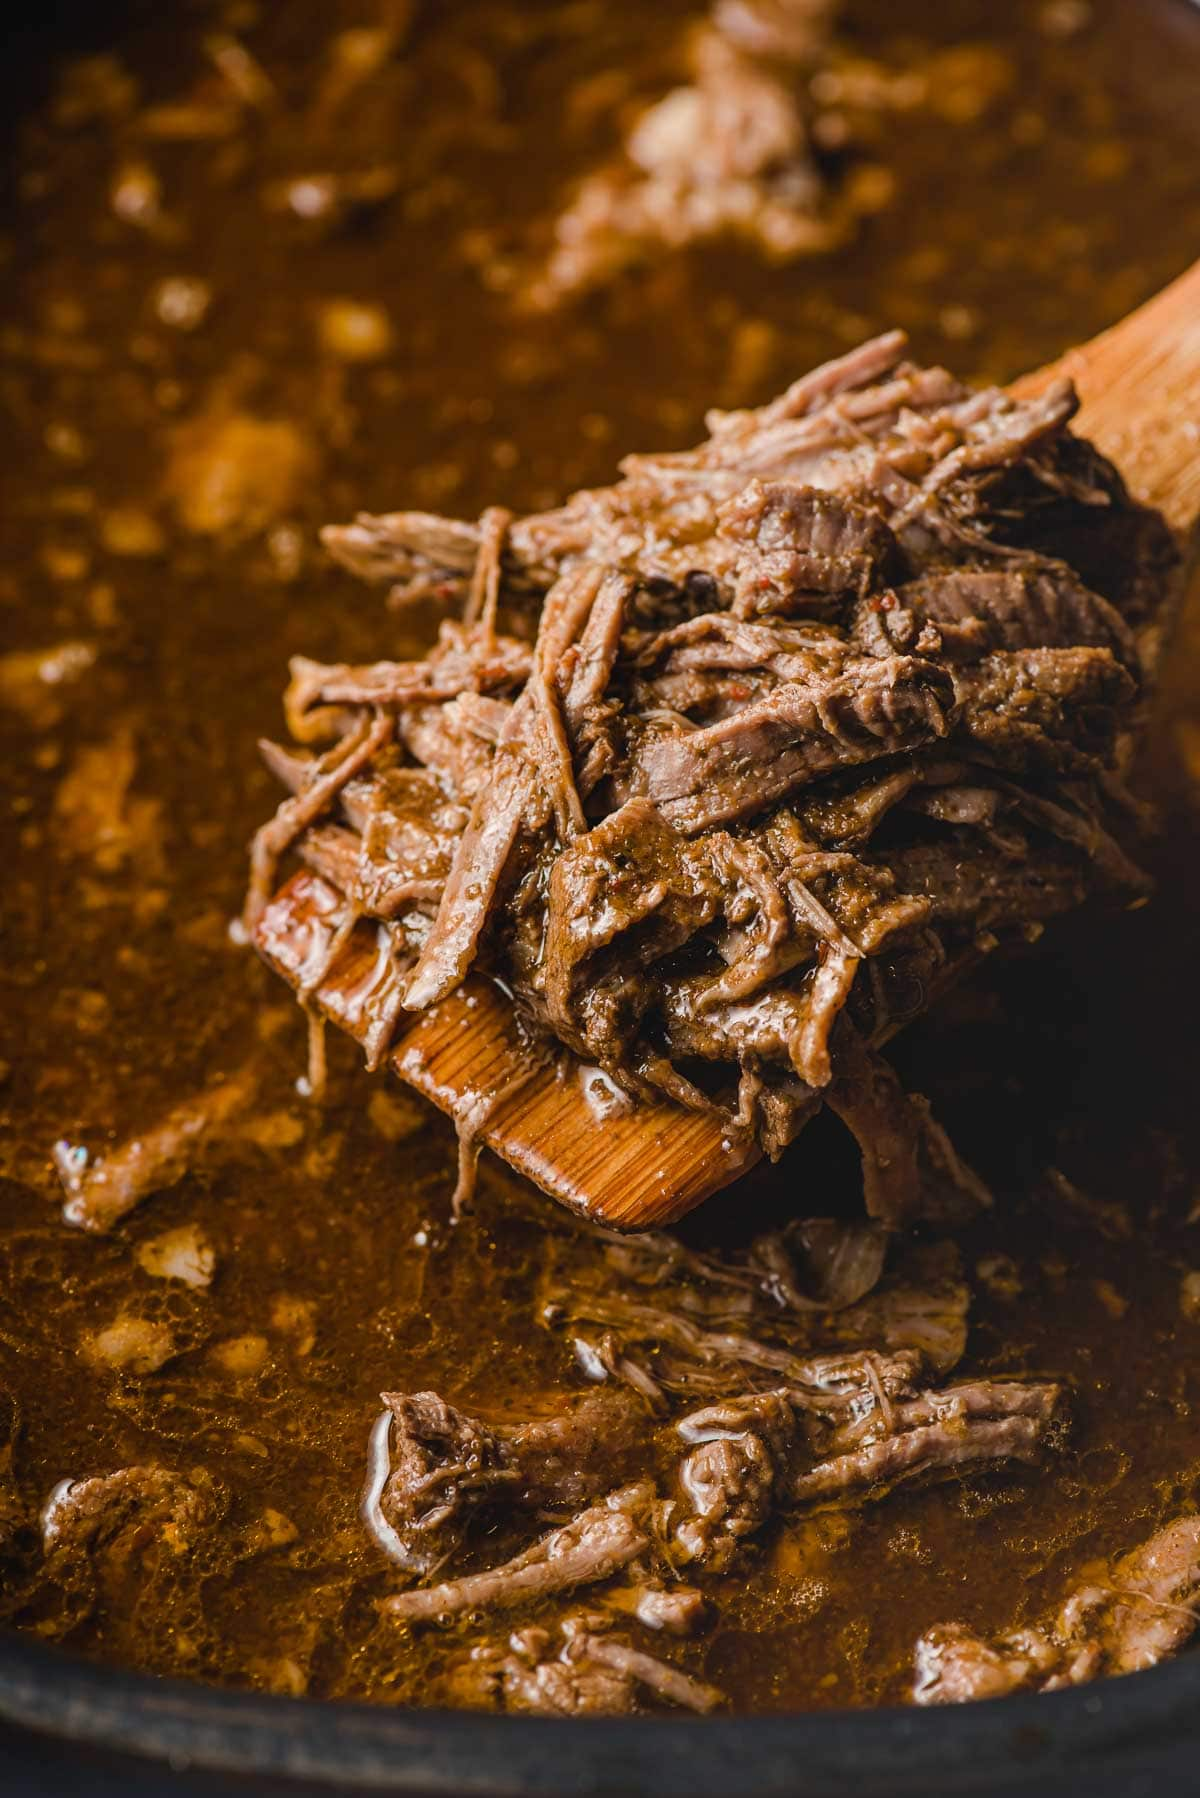 Wooden spoon scooping barbacoa out of a slow cooker.